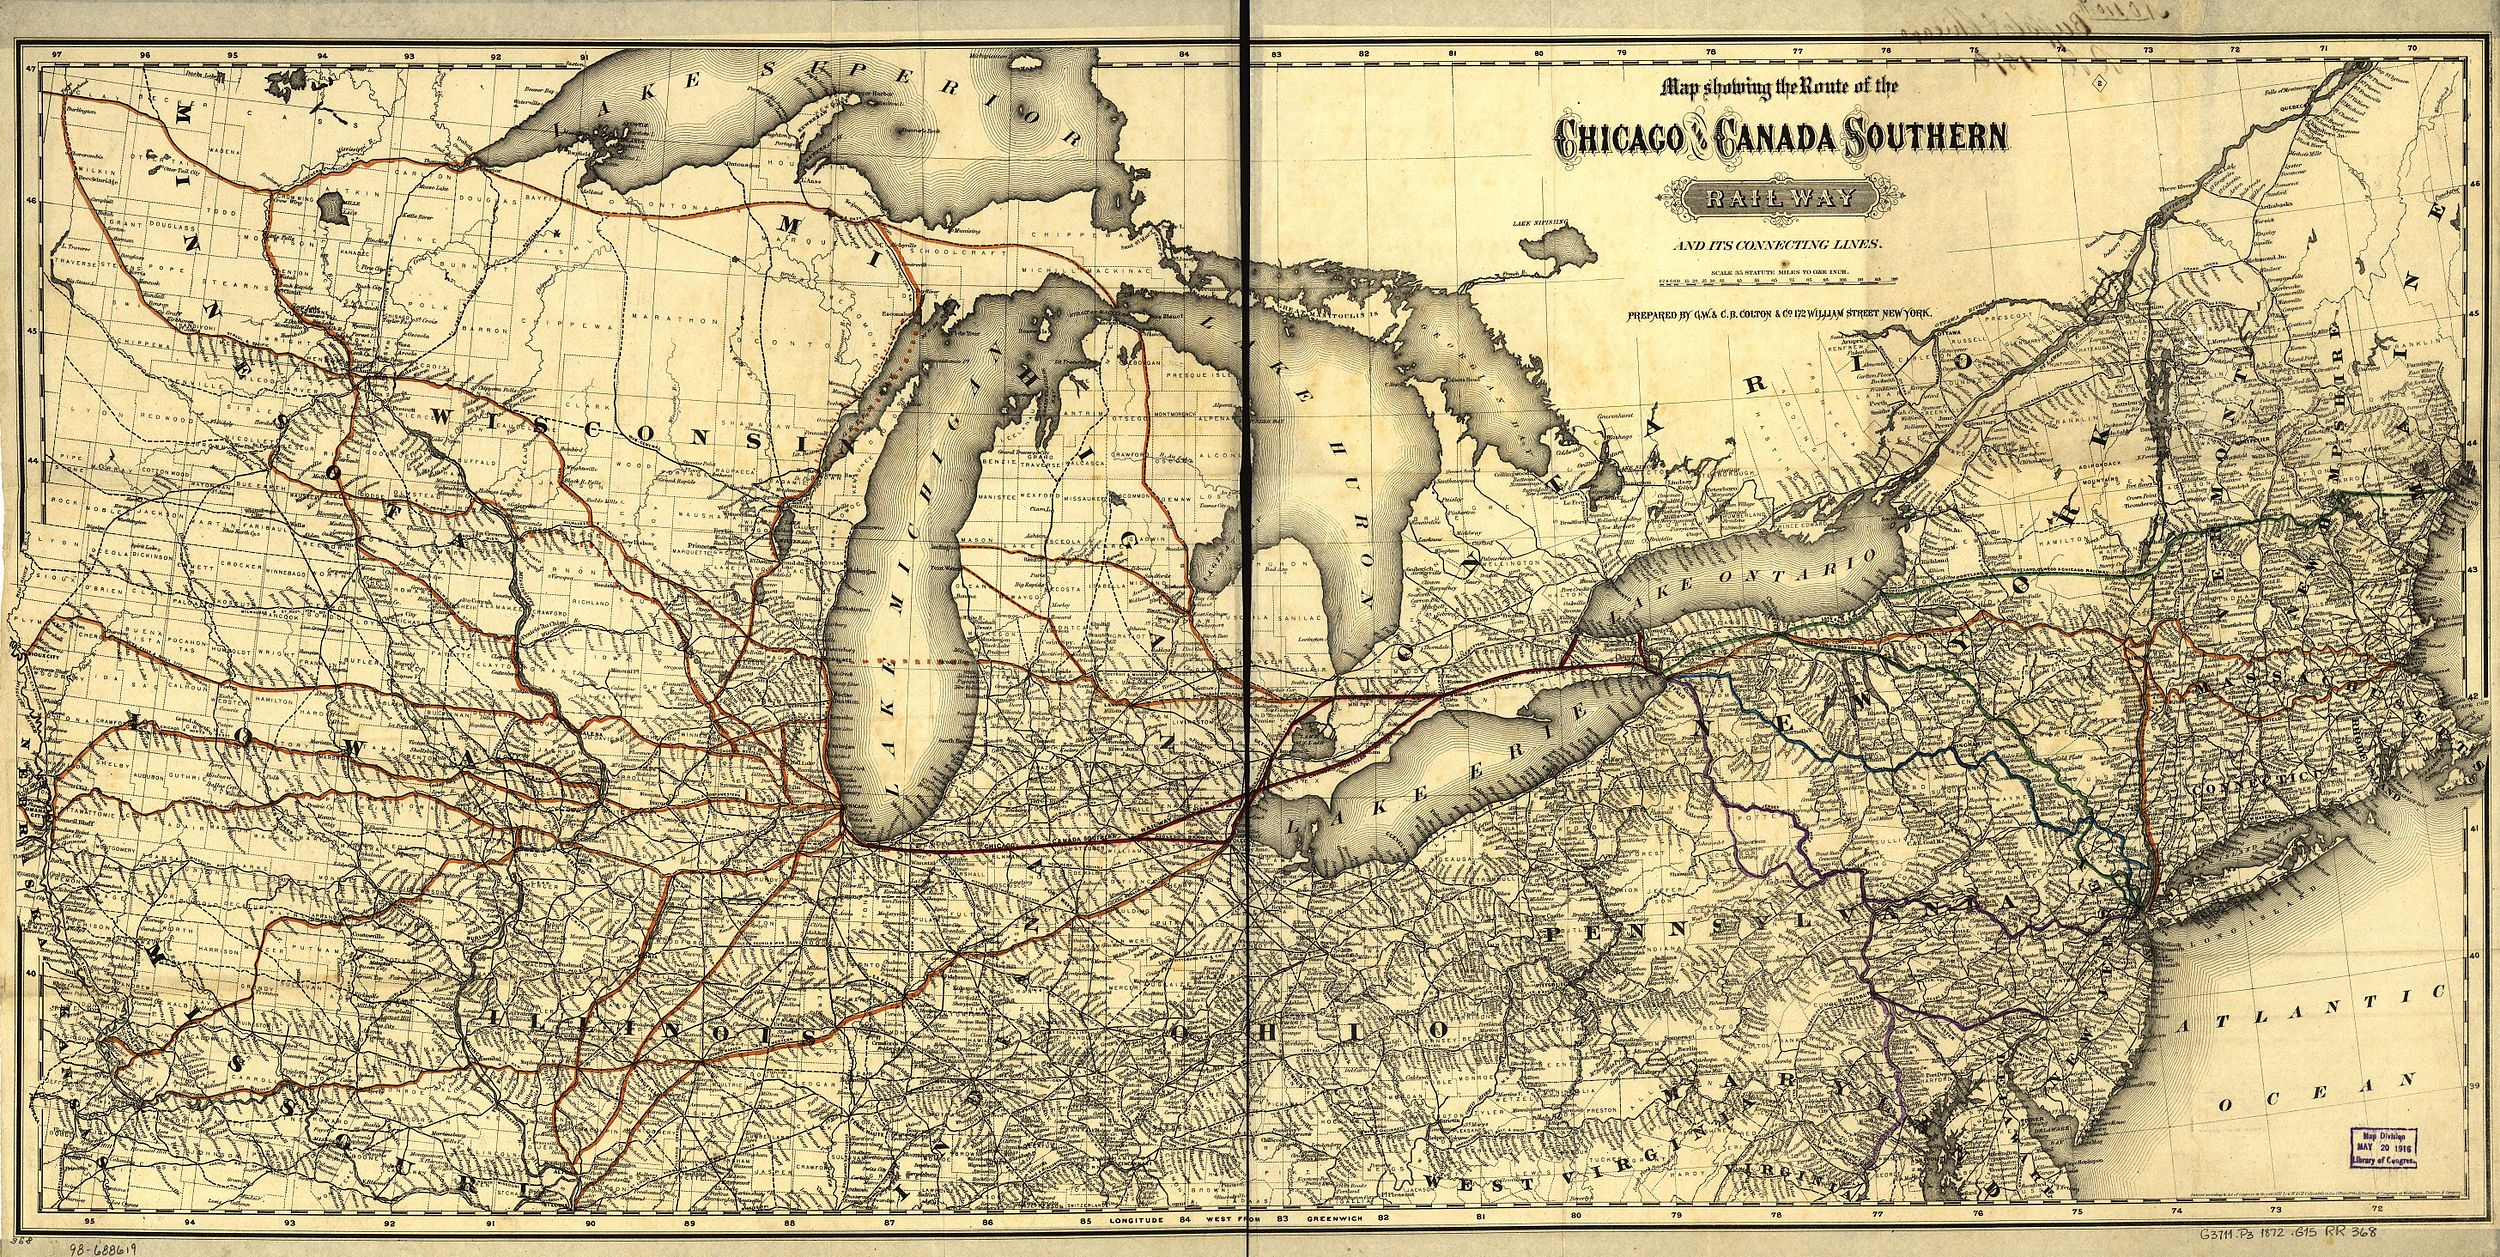 by 1872, the Toledo, Wabash and Western Railway (shown in red) connected Toledo, Fort Wayne, and Lafayette. The original canal, with its slow pace and maintenance issues, struggled to compete with many rail lines in operation in the 1870s.